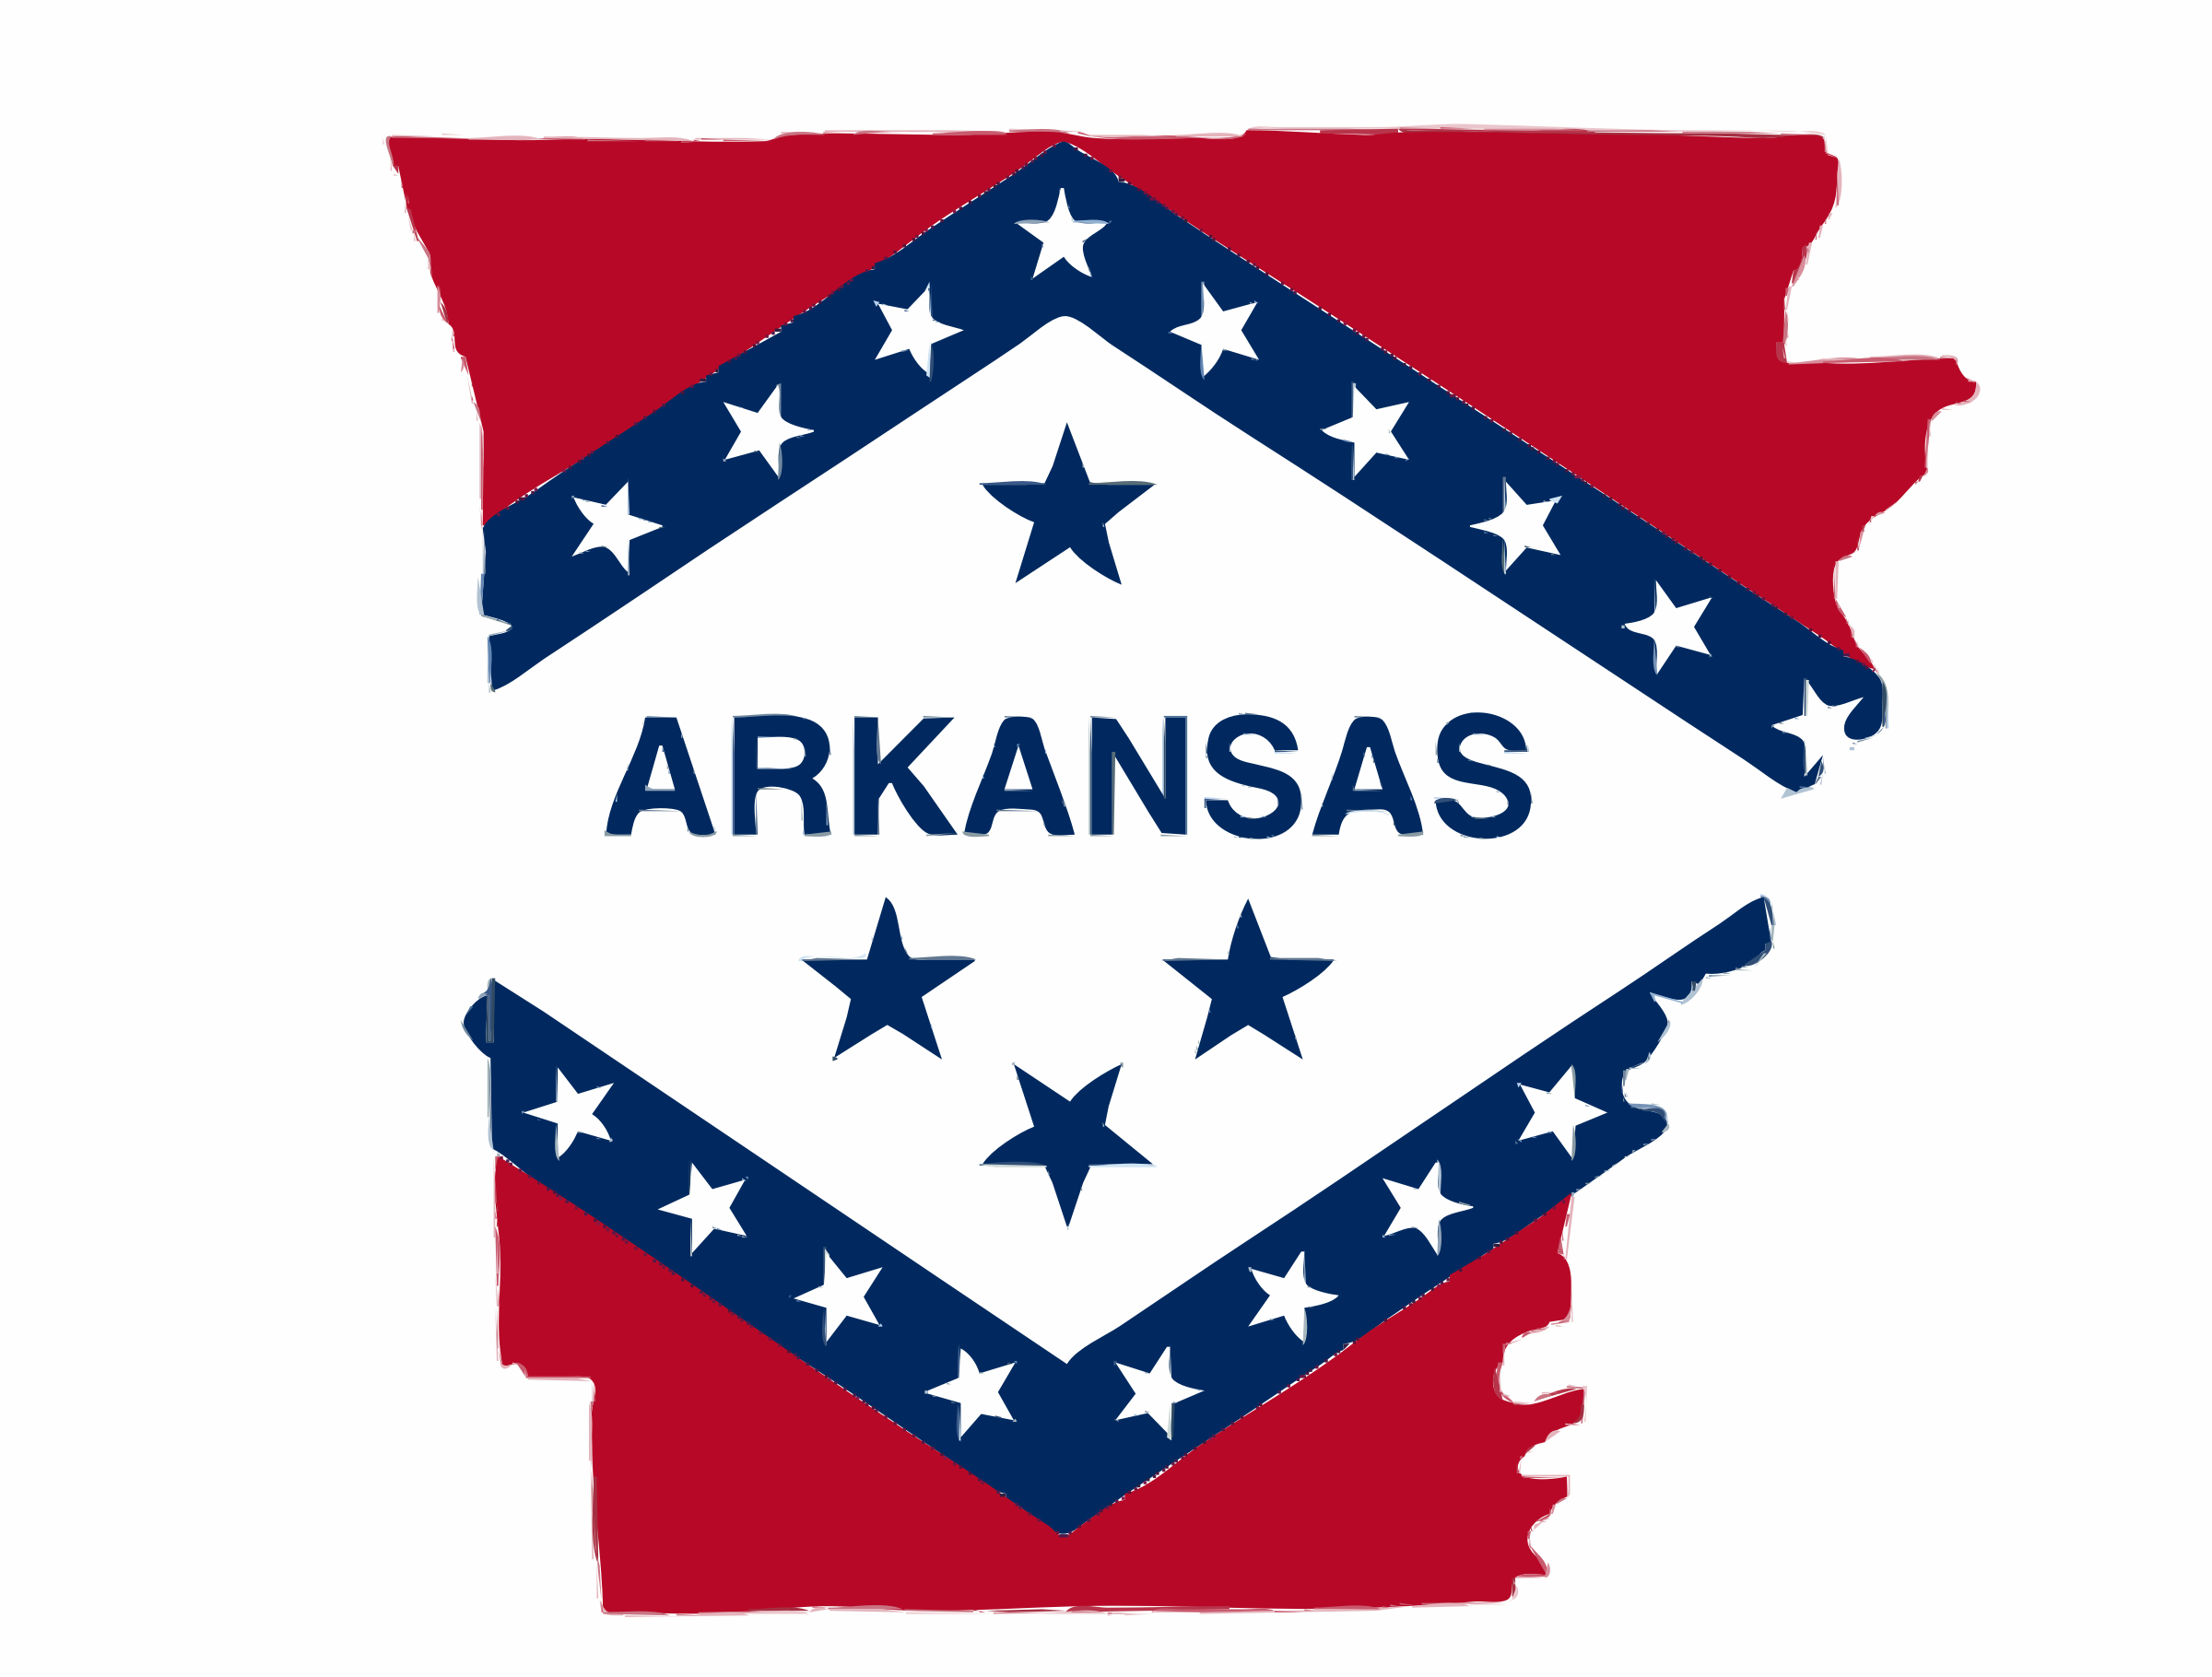 Arkansas by Arohletter1